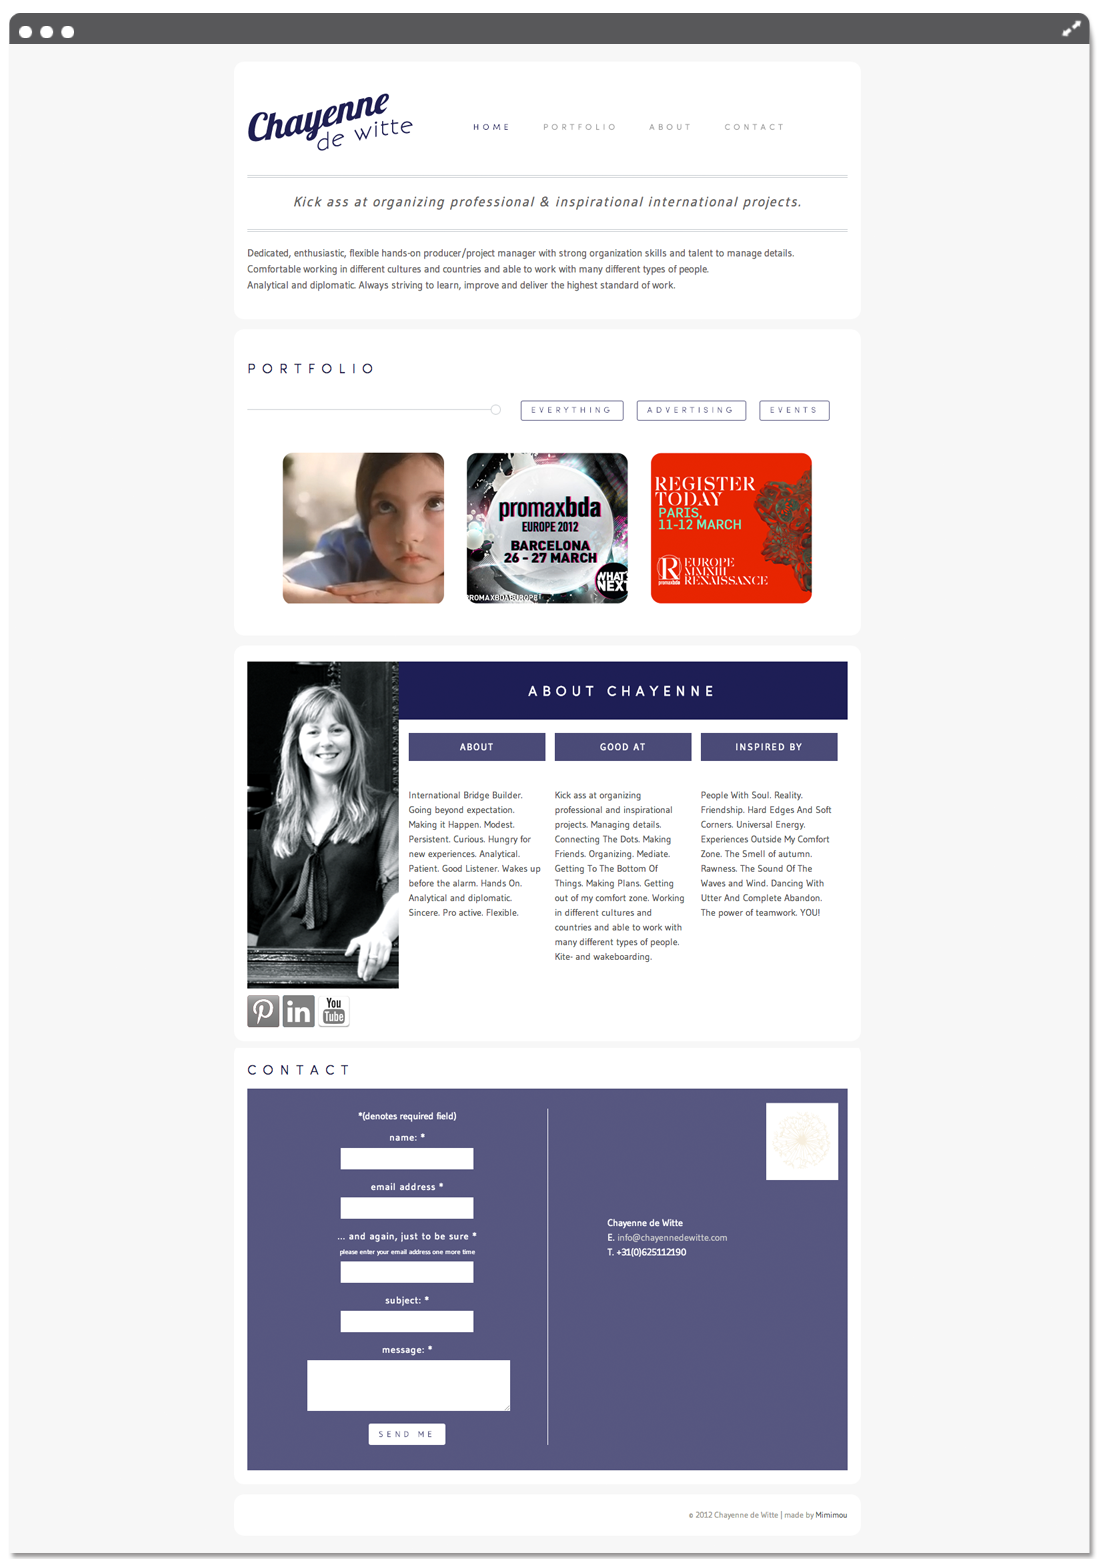 Website Chayenne de Witte home